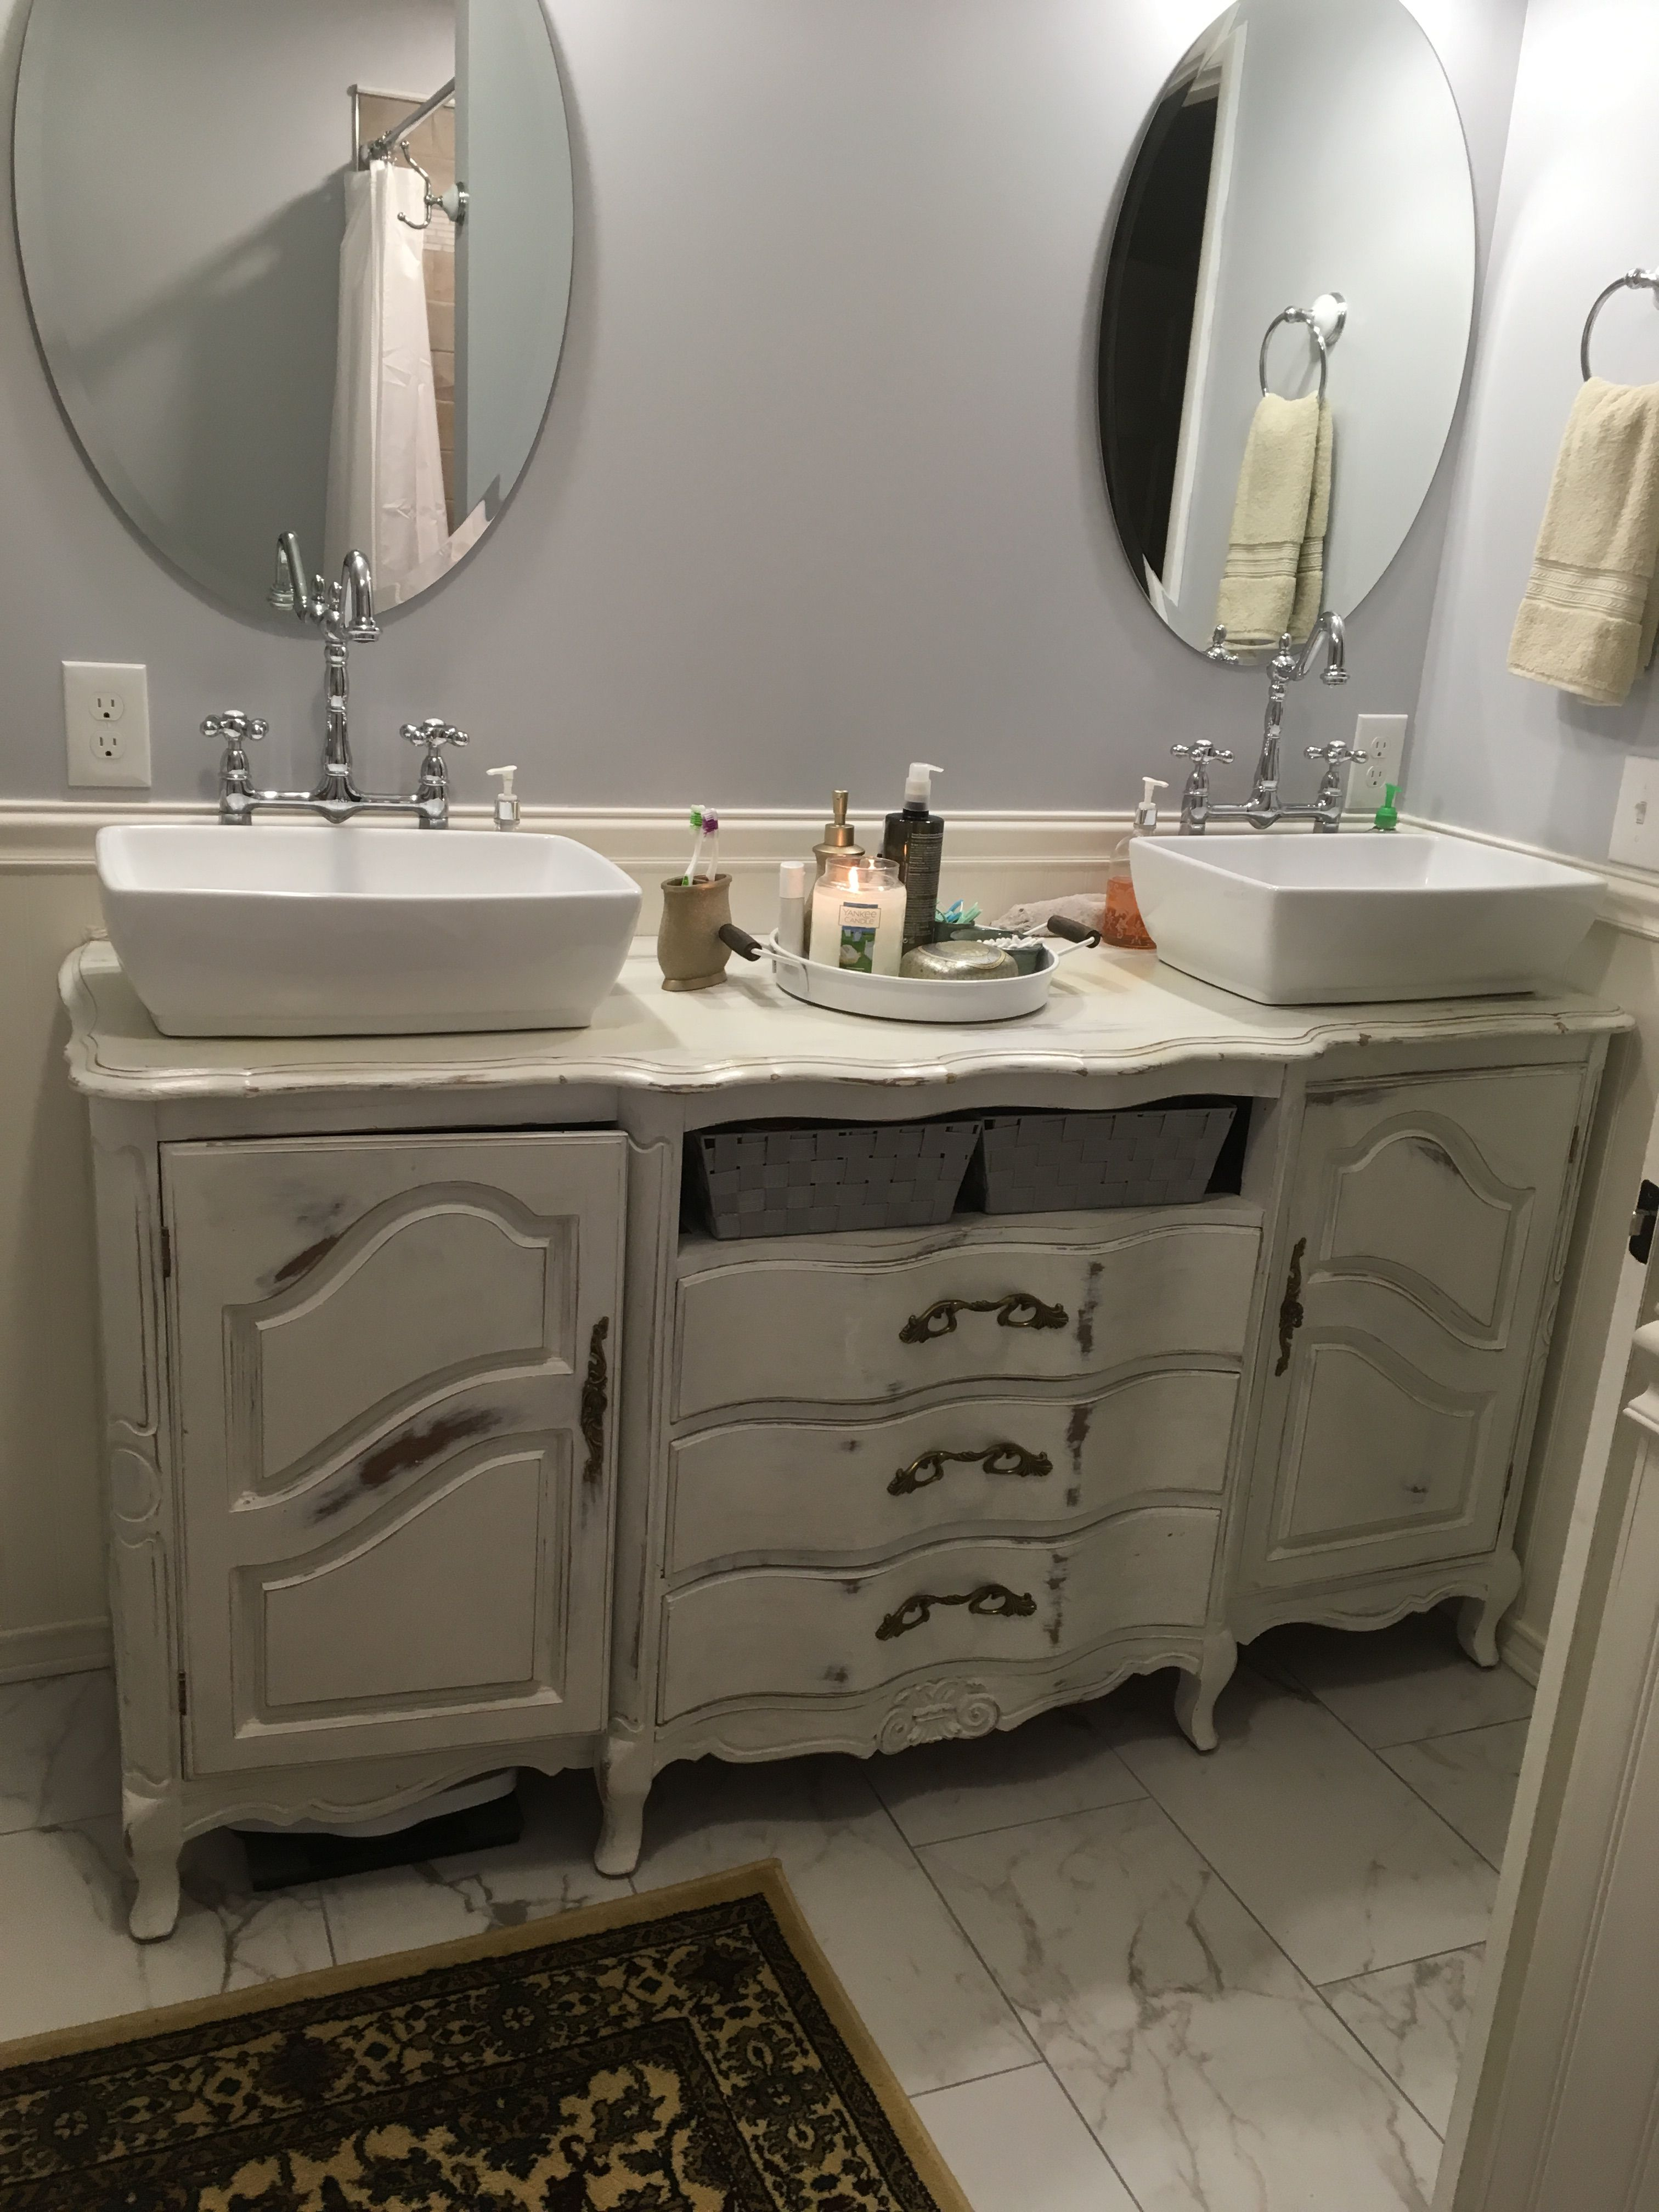 Pin By Karen Finnegan On House Before And After Vanity Double